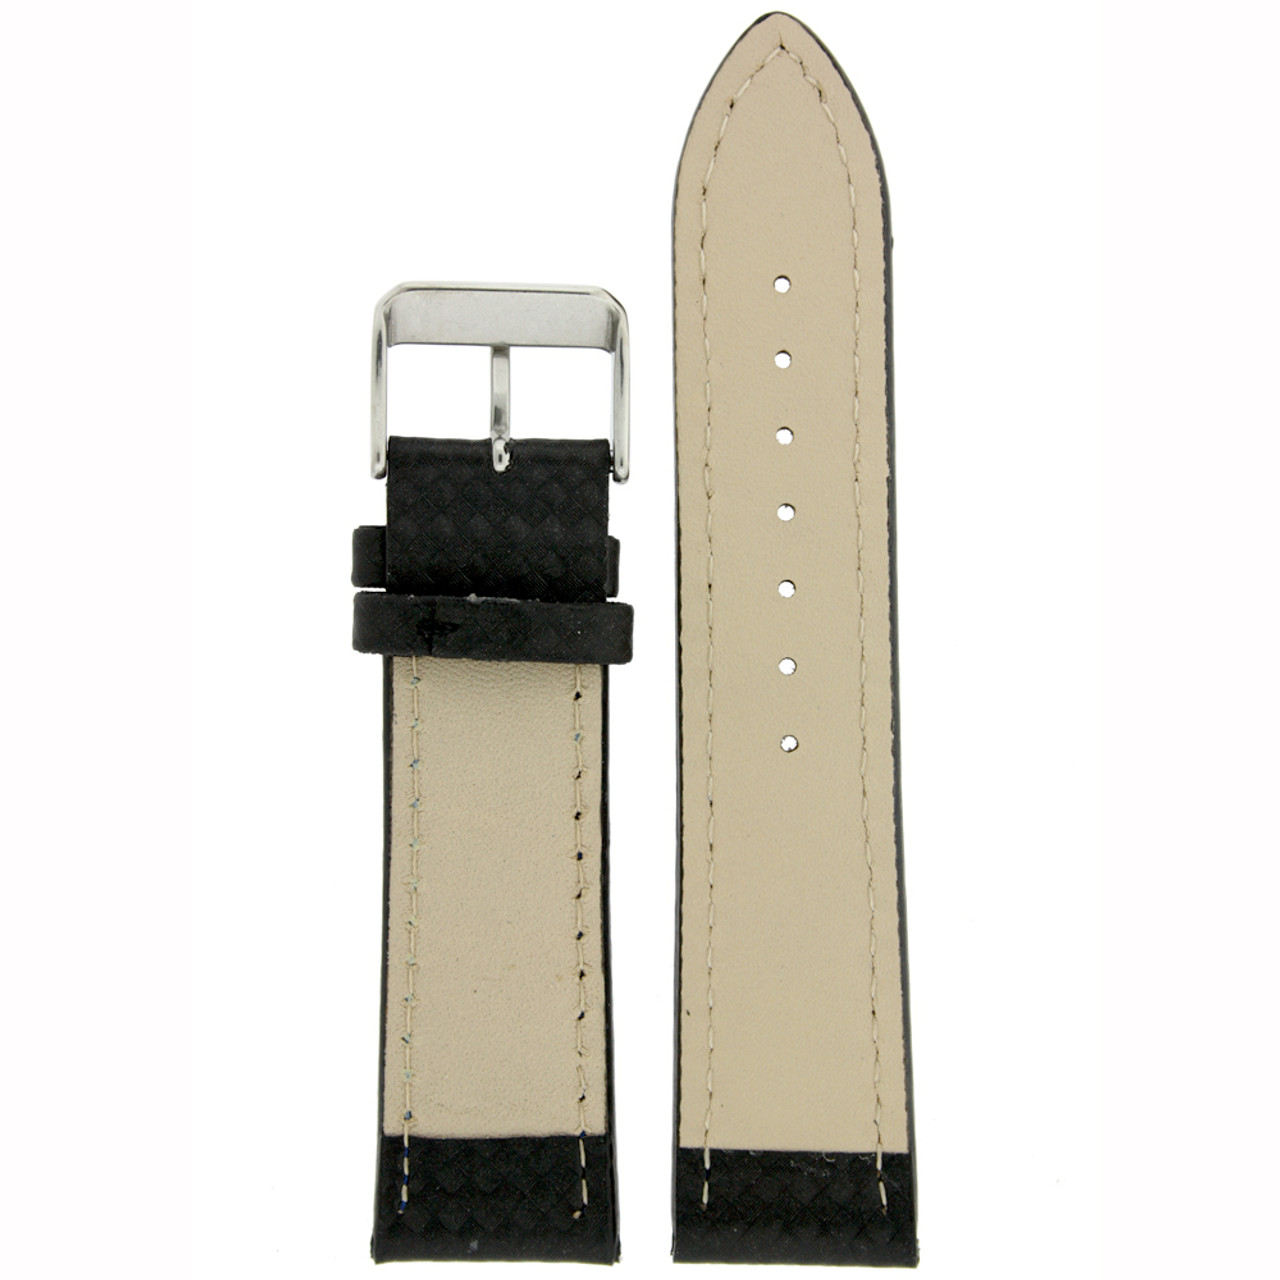 Carbon Fiber Print Leather Watch Band in Black - Bottom View